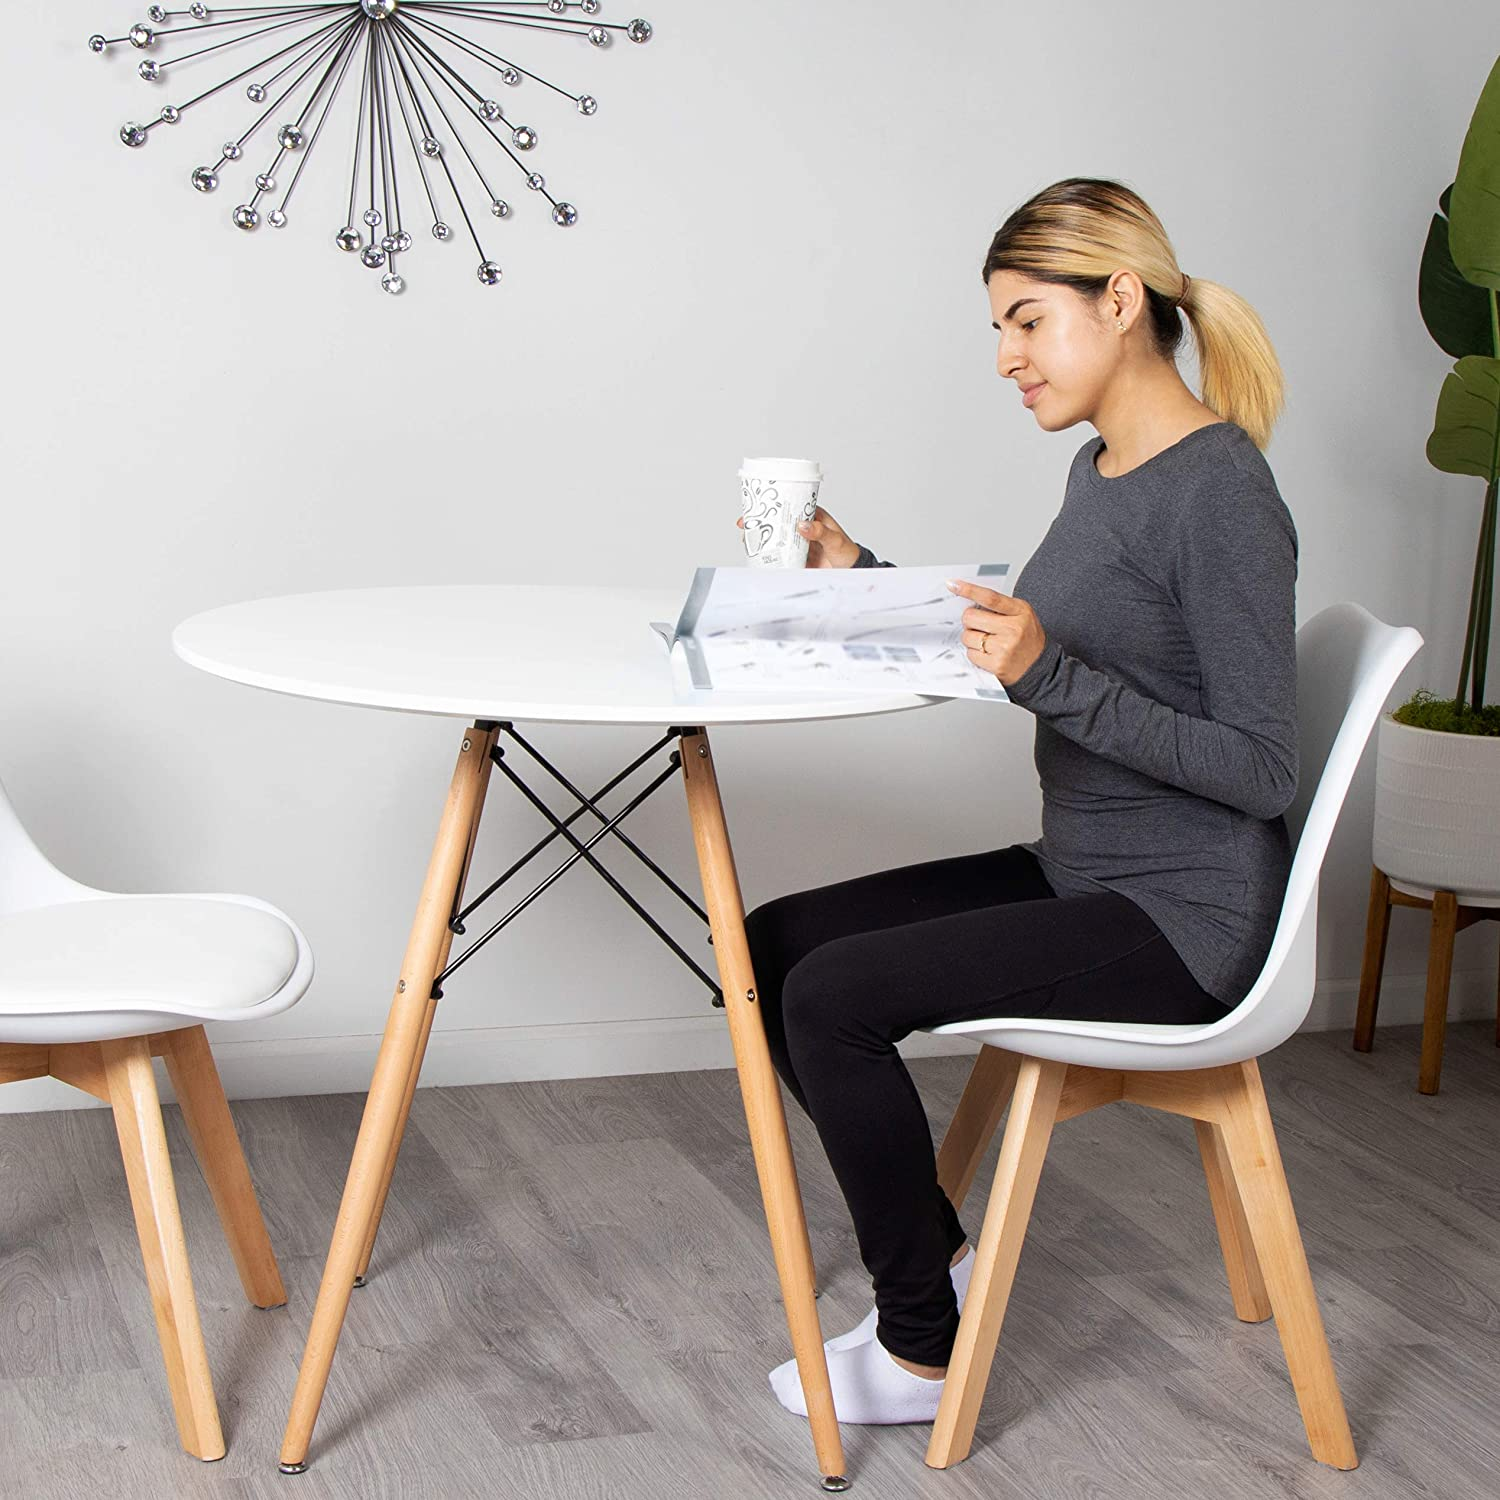 Milliard Dining Table – Small, Round, Dining Room Table   for 9 to 9 People